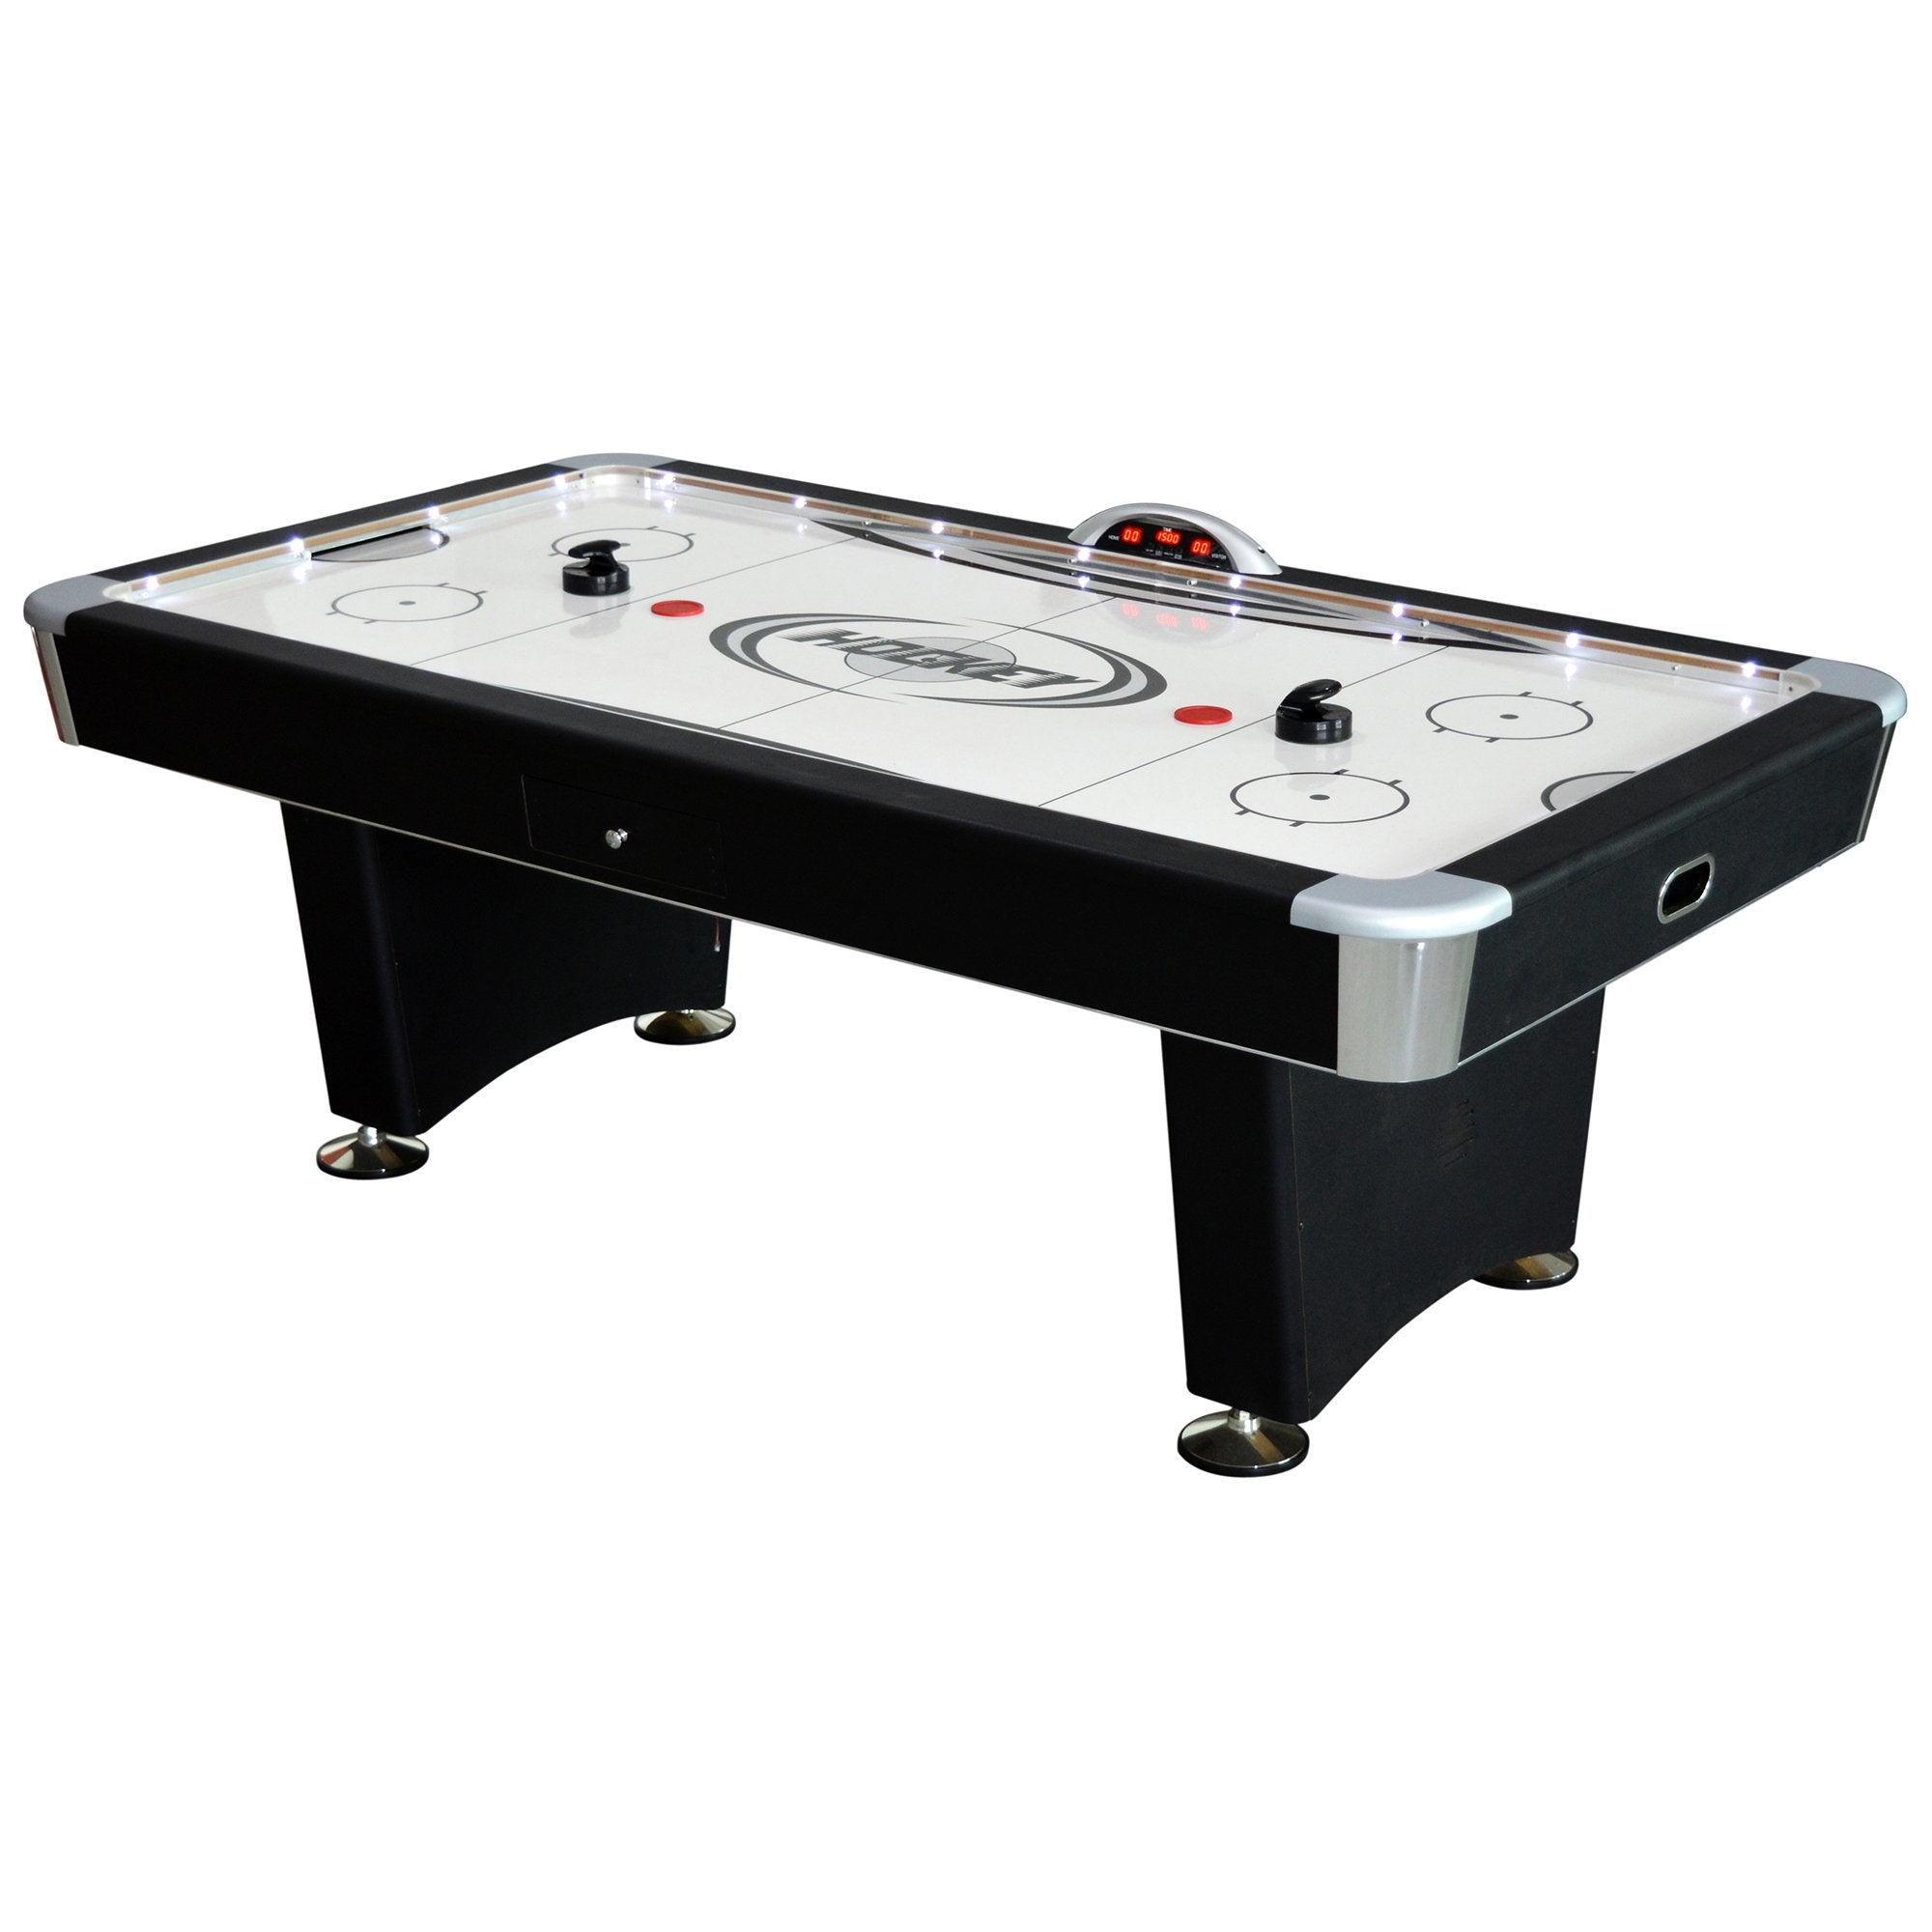 Hathaway Stratosphere 7.5ft Air Hockey Table - Gaming Blaze